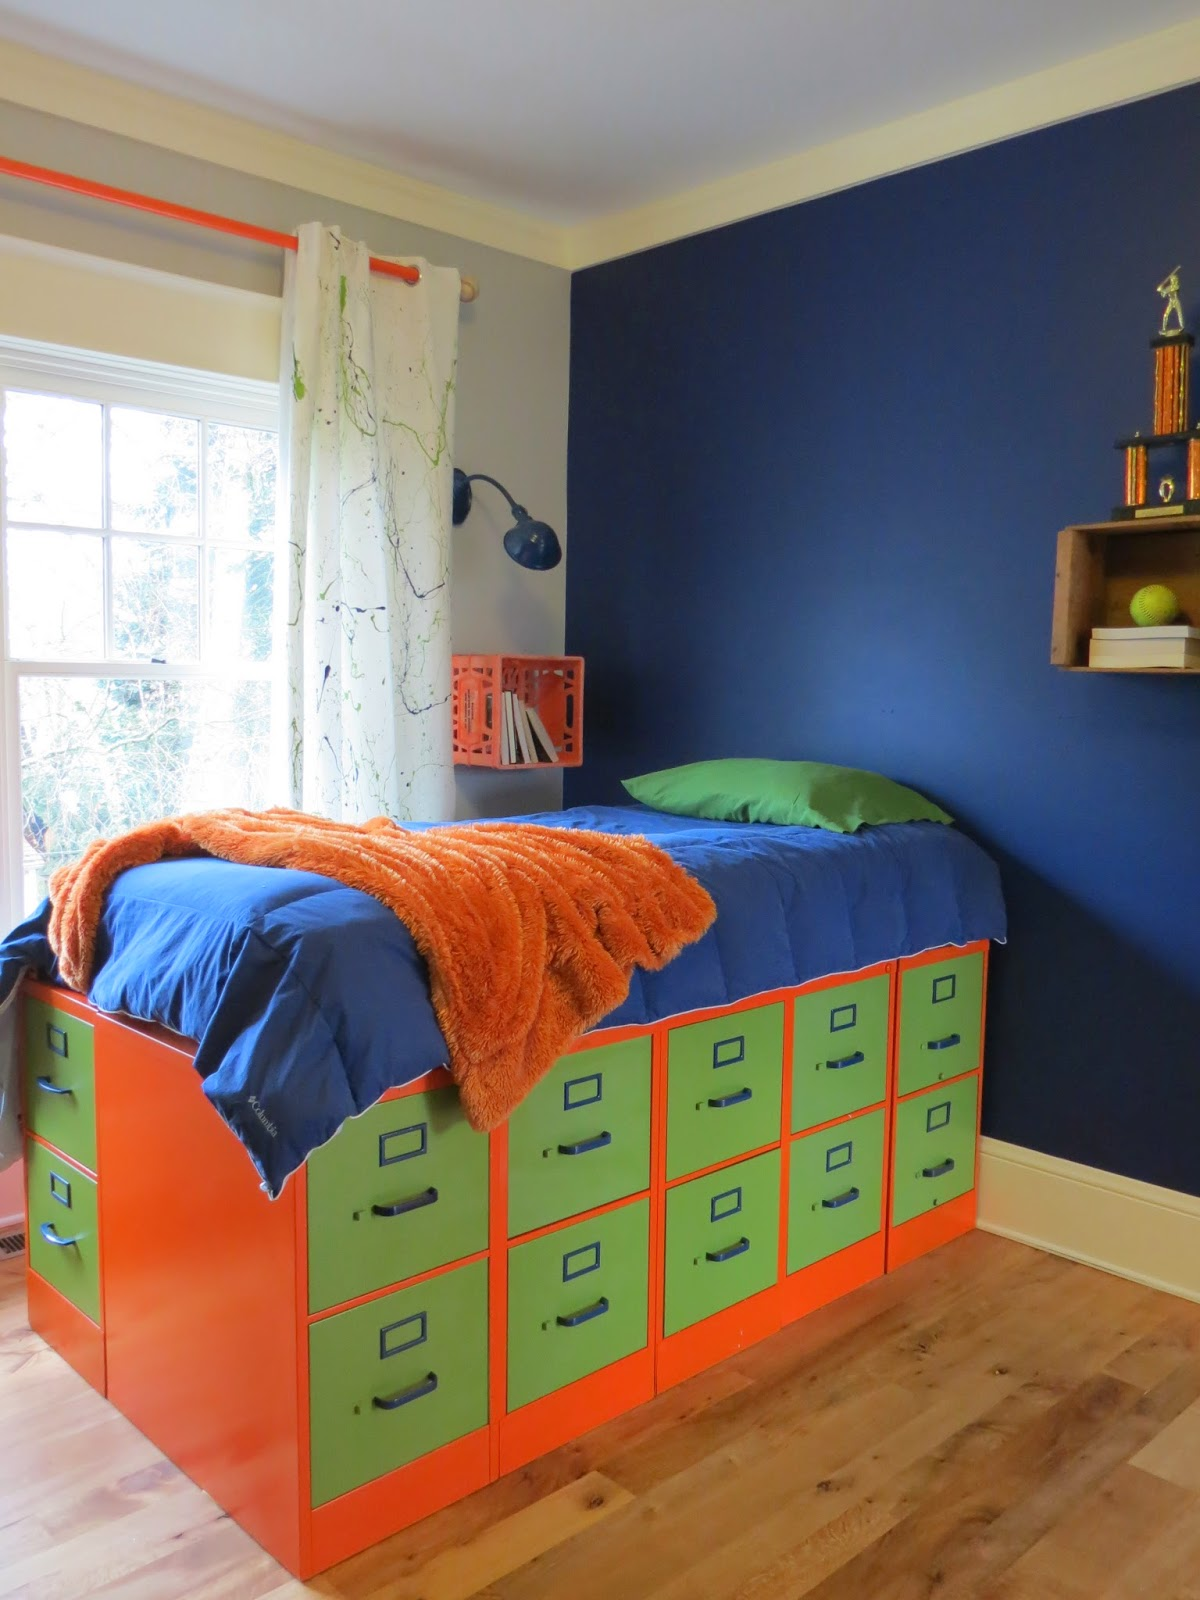 DIY Filing Cabinet Bed